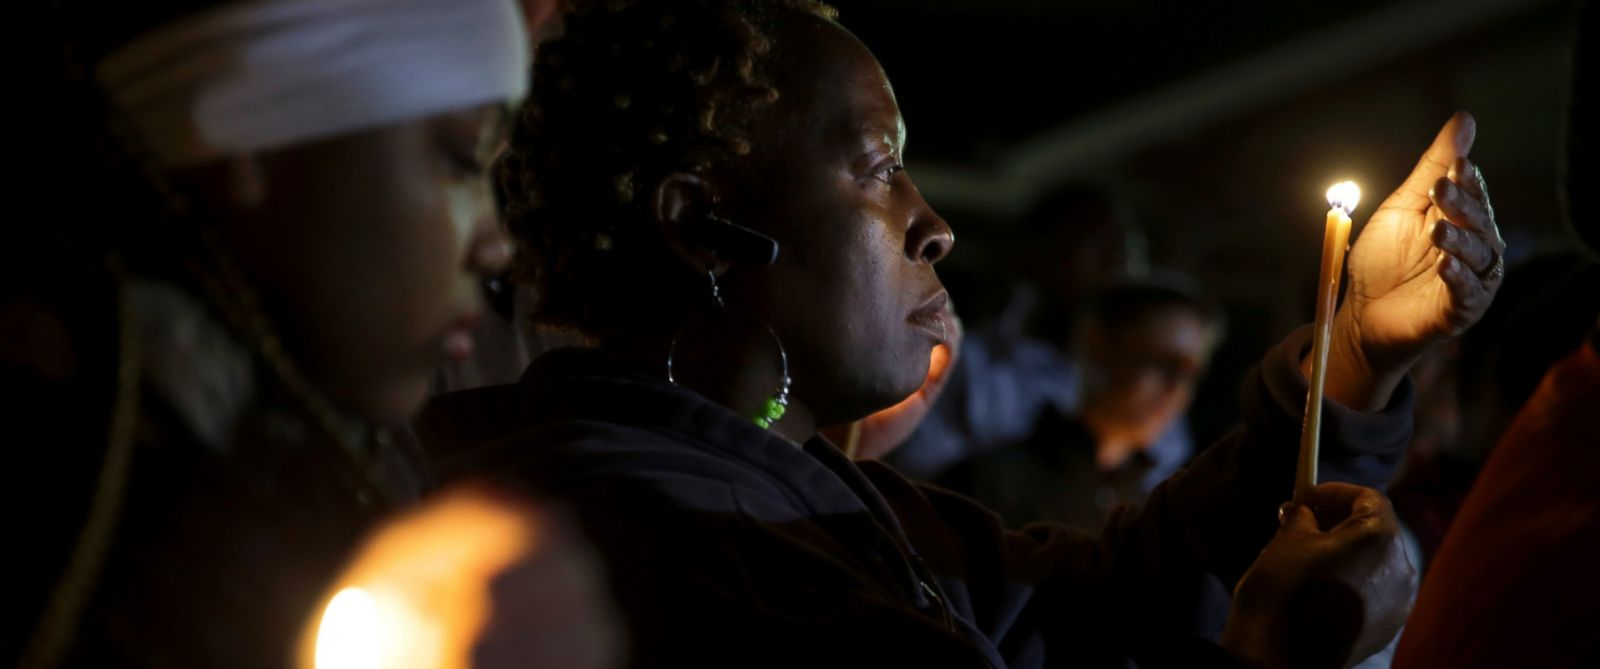 People take part in a candlelight vigil Thursday, March 12, 2015, in Ferguson, Mo. Two police officers were shot early Thursday morning in front of the Ferguson Police Department during a protest following the resignation of the citys police chief.